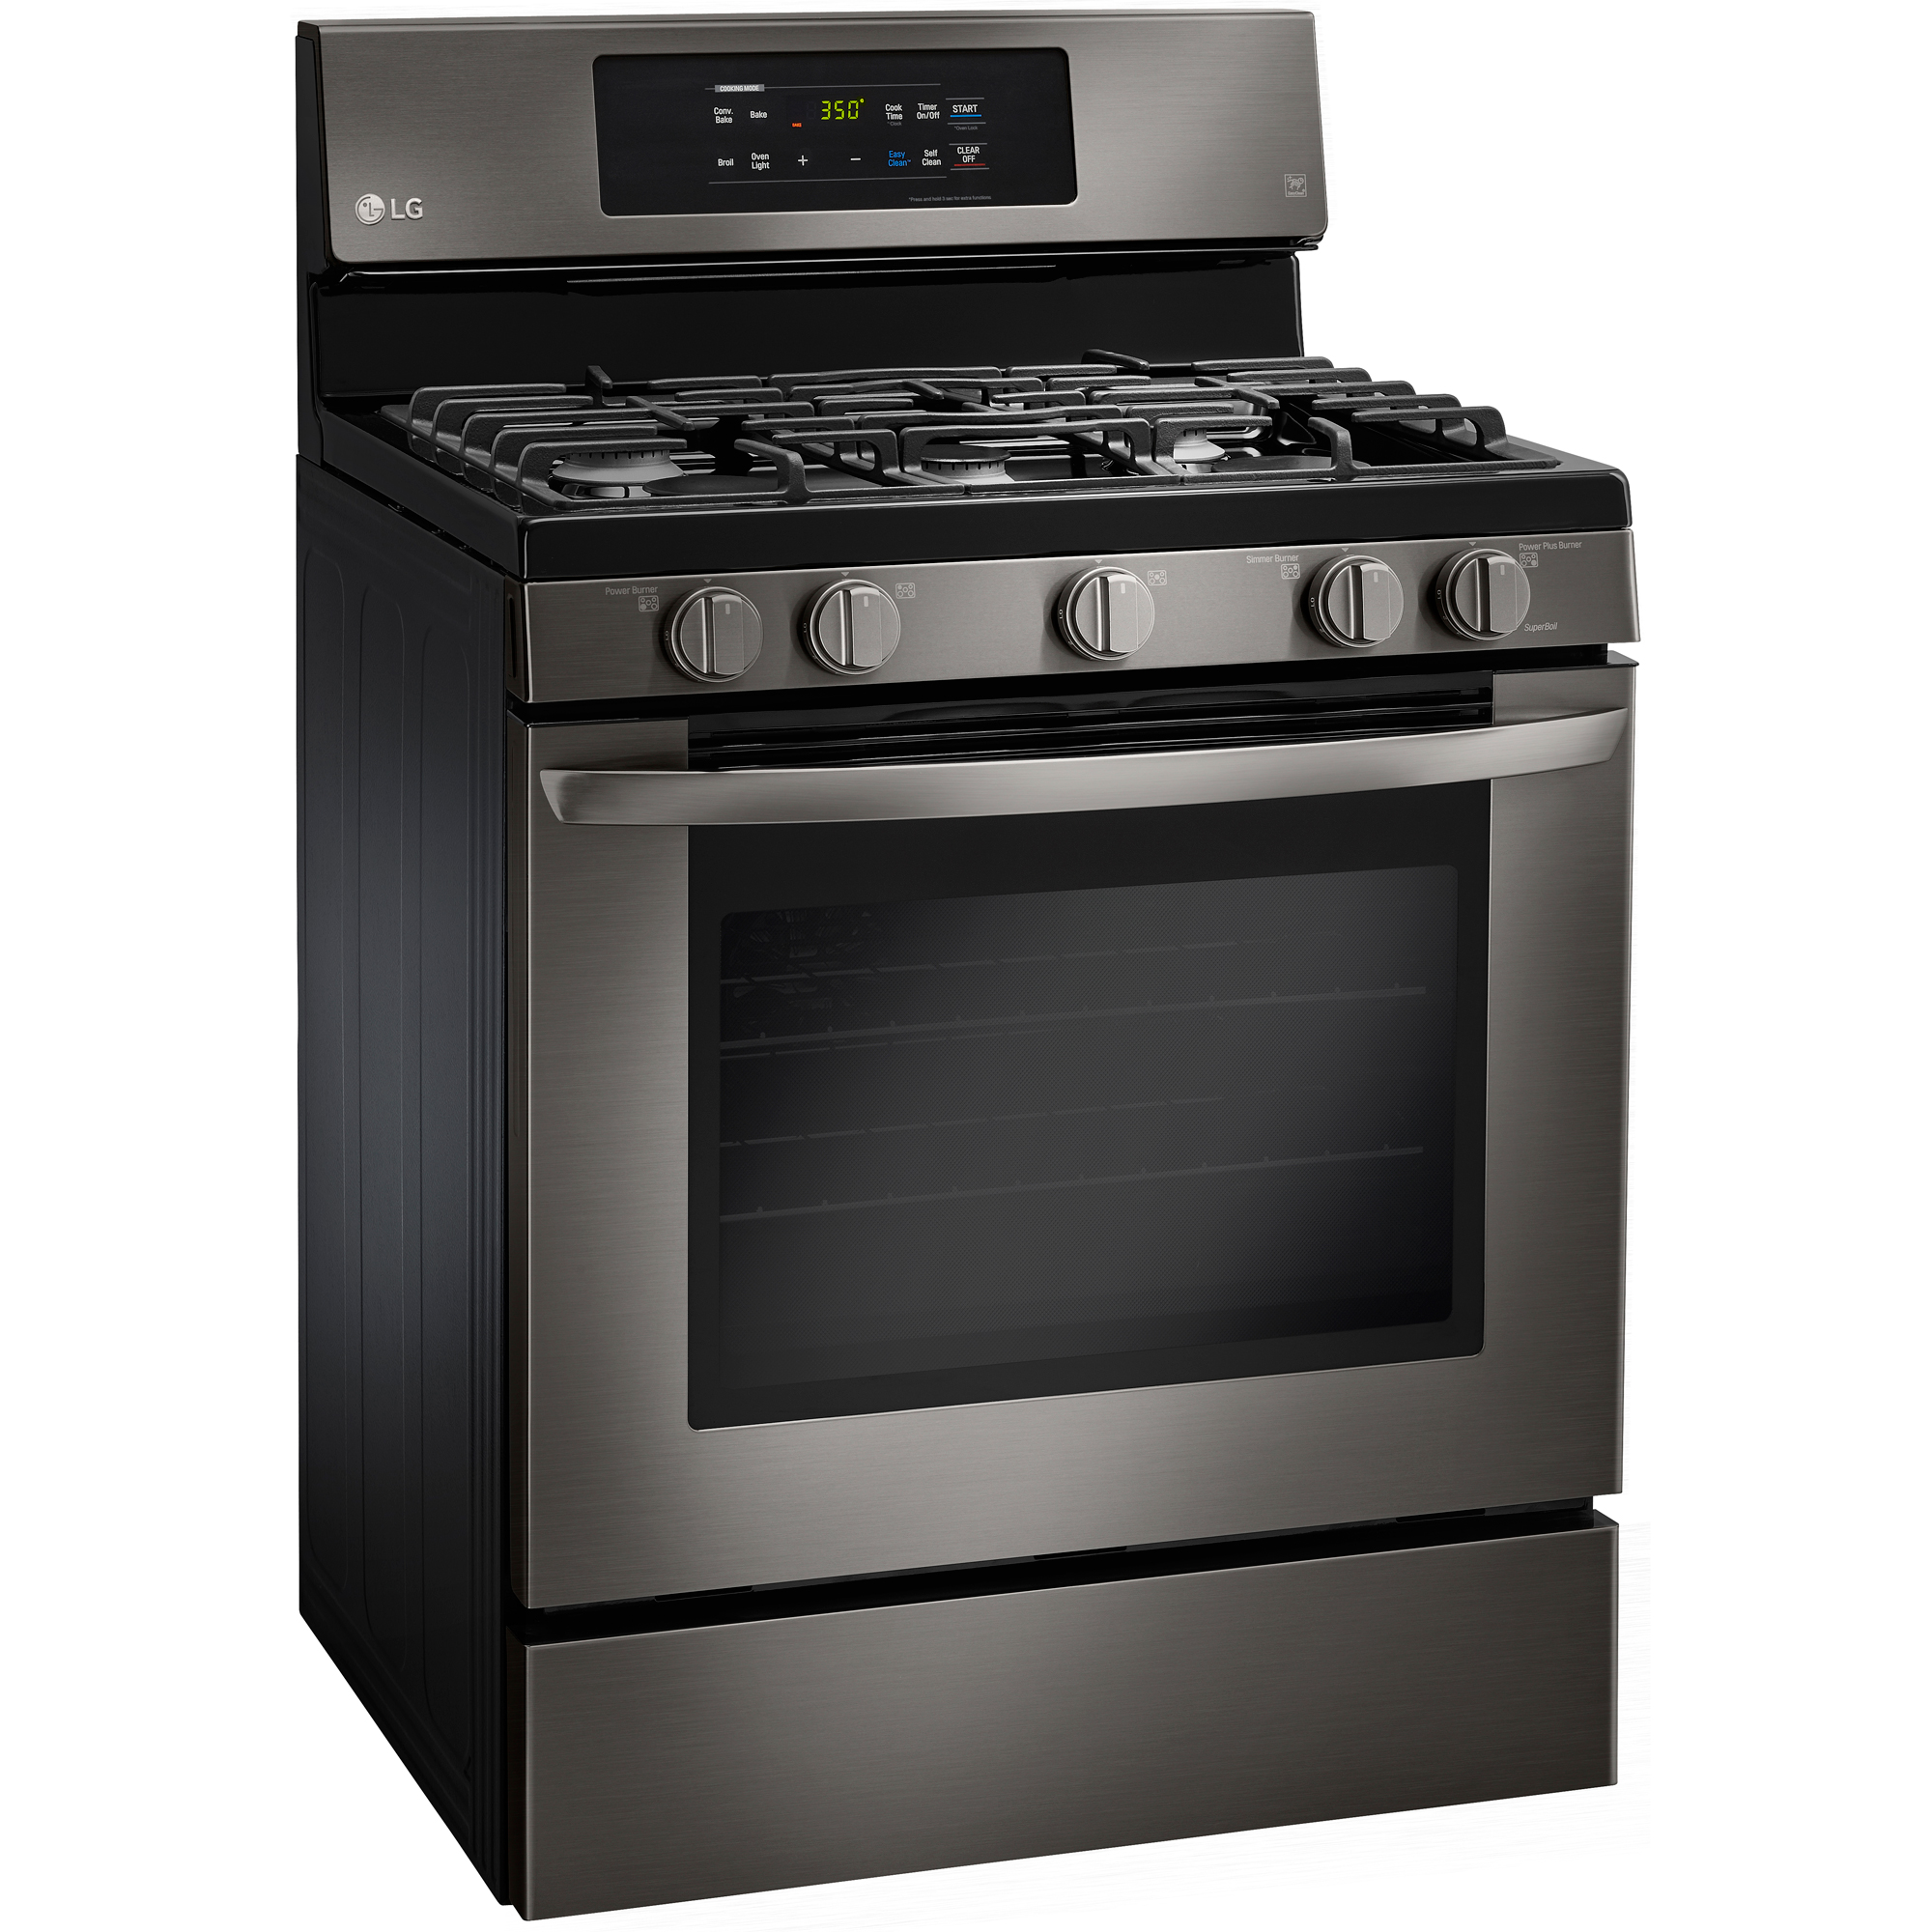 LG LRG3081BD 5.4 cu. ft. Large Capacity Gas Range w/ EasyClean® - Black Stainless